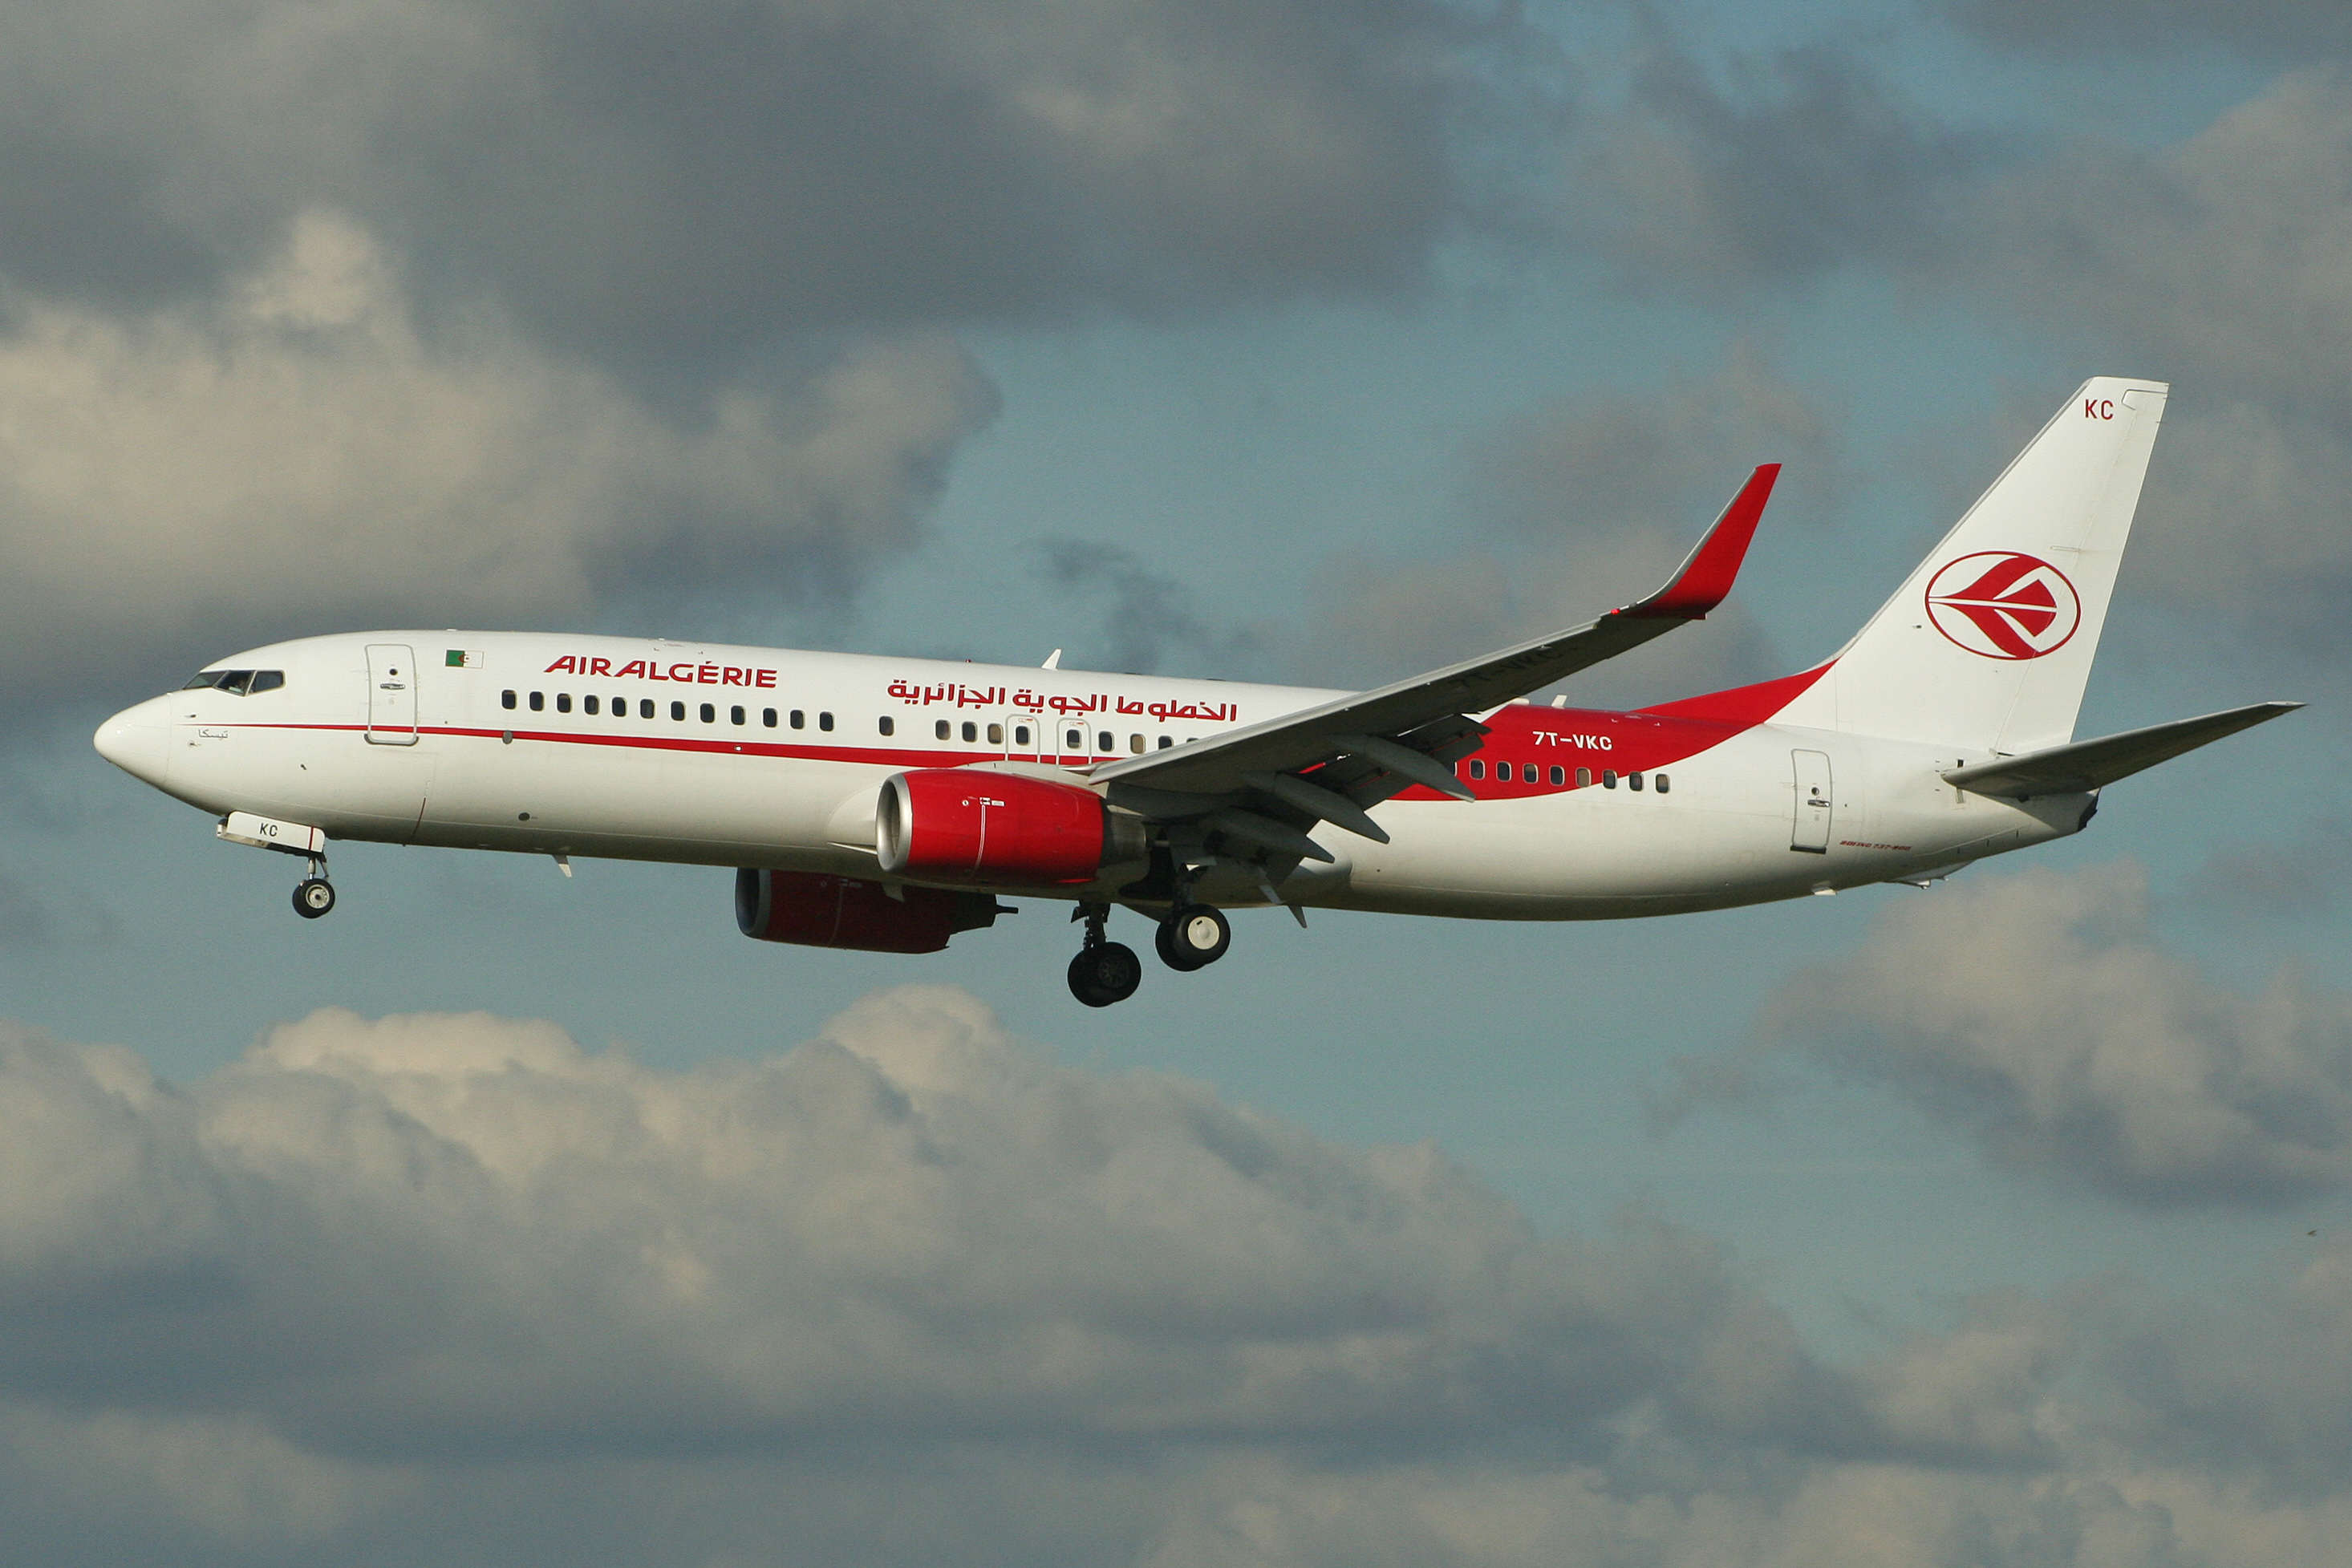 BREAKING: Flight Disappears From Radar After Declaring Mid Air Emergency plane1